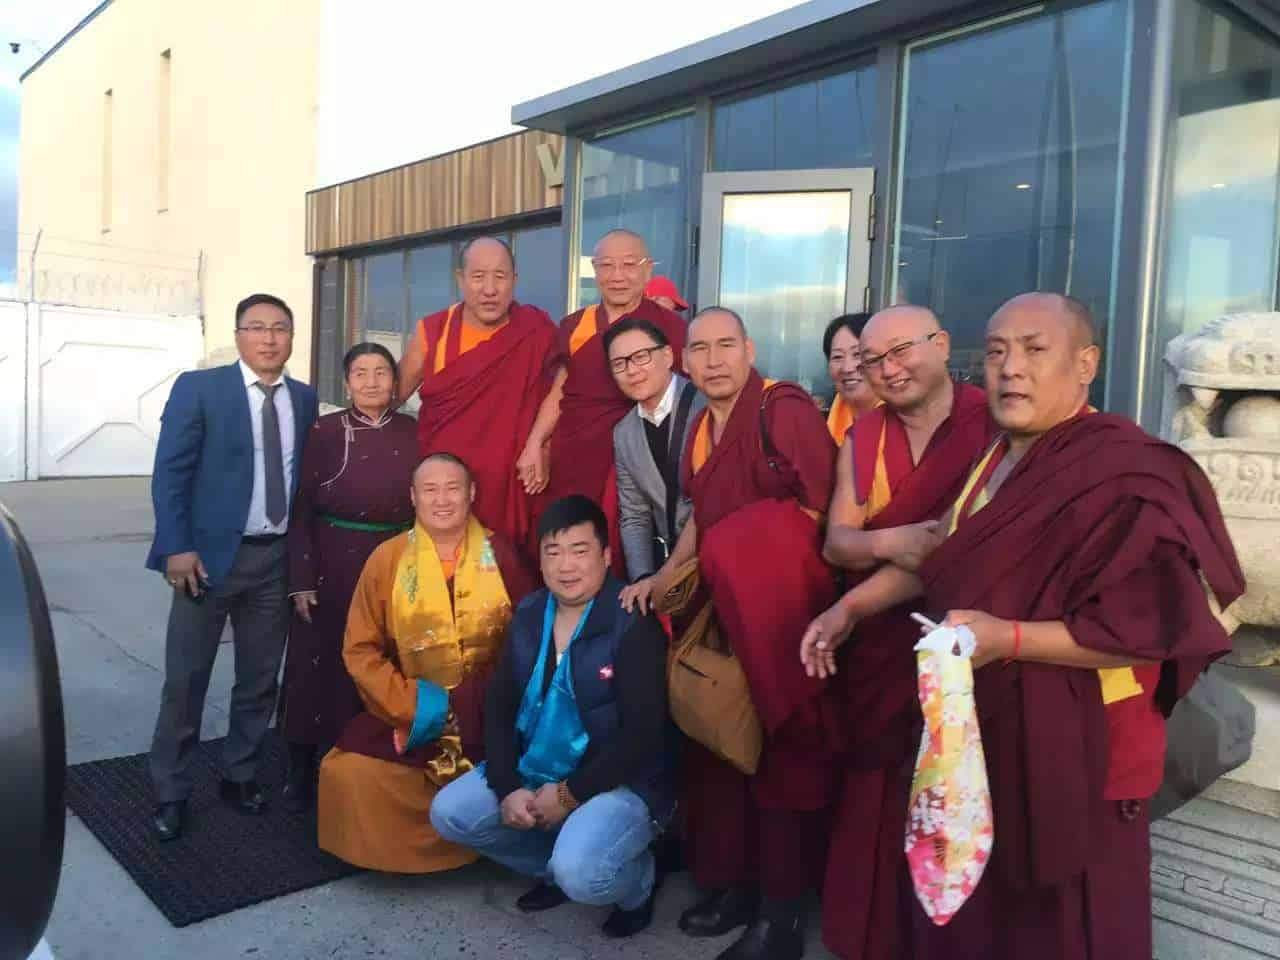 gosok-rinpoche-mongolia-2016-2682412af798c342aa75eee85e50d13